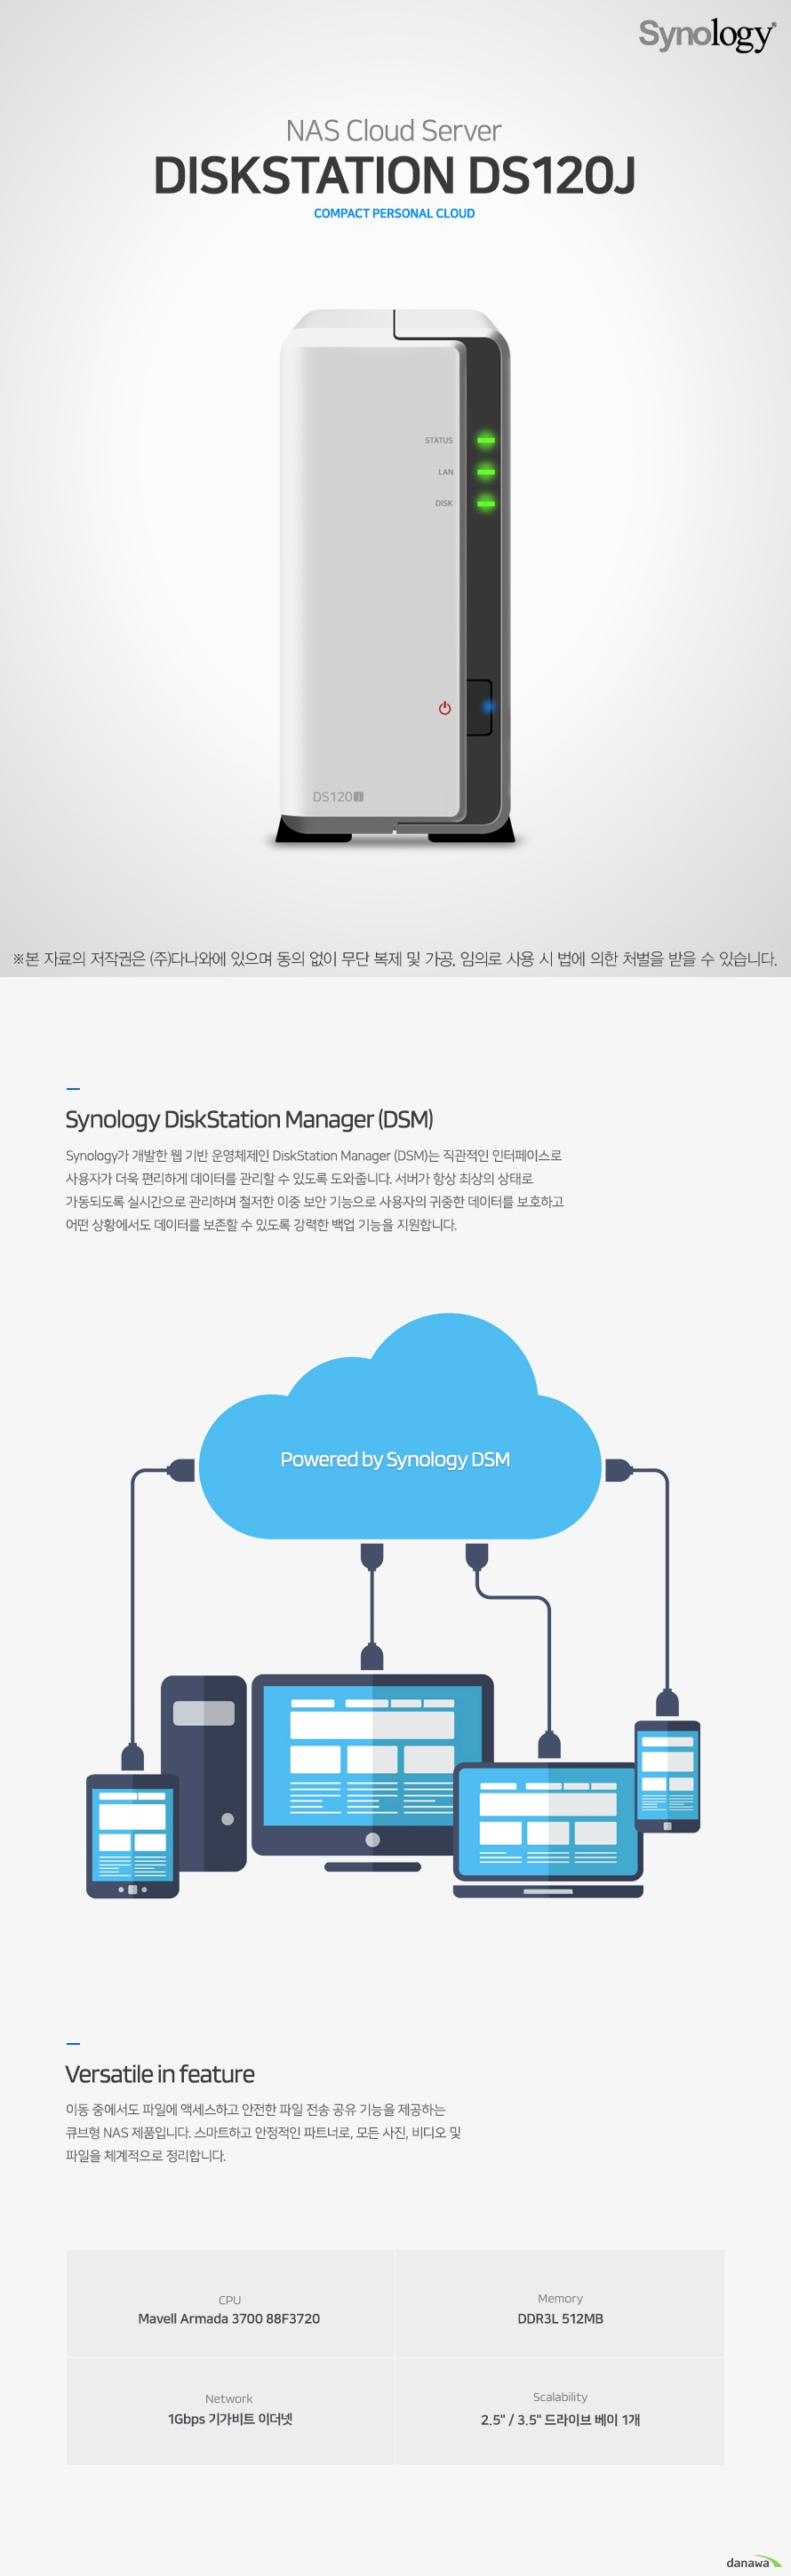 Synology DS120j (14TB)